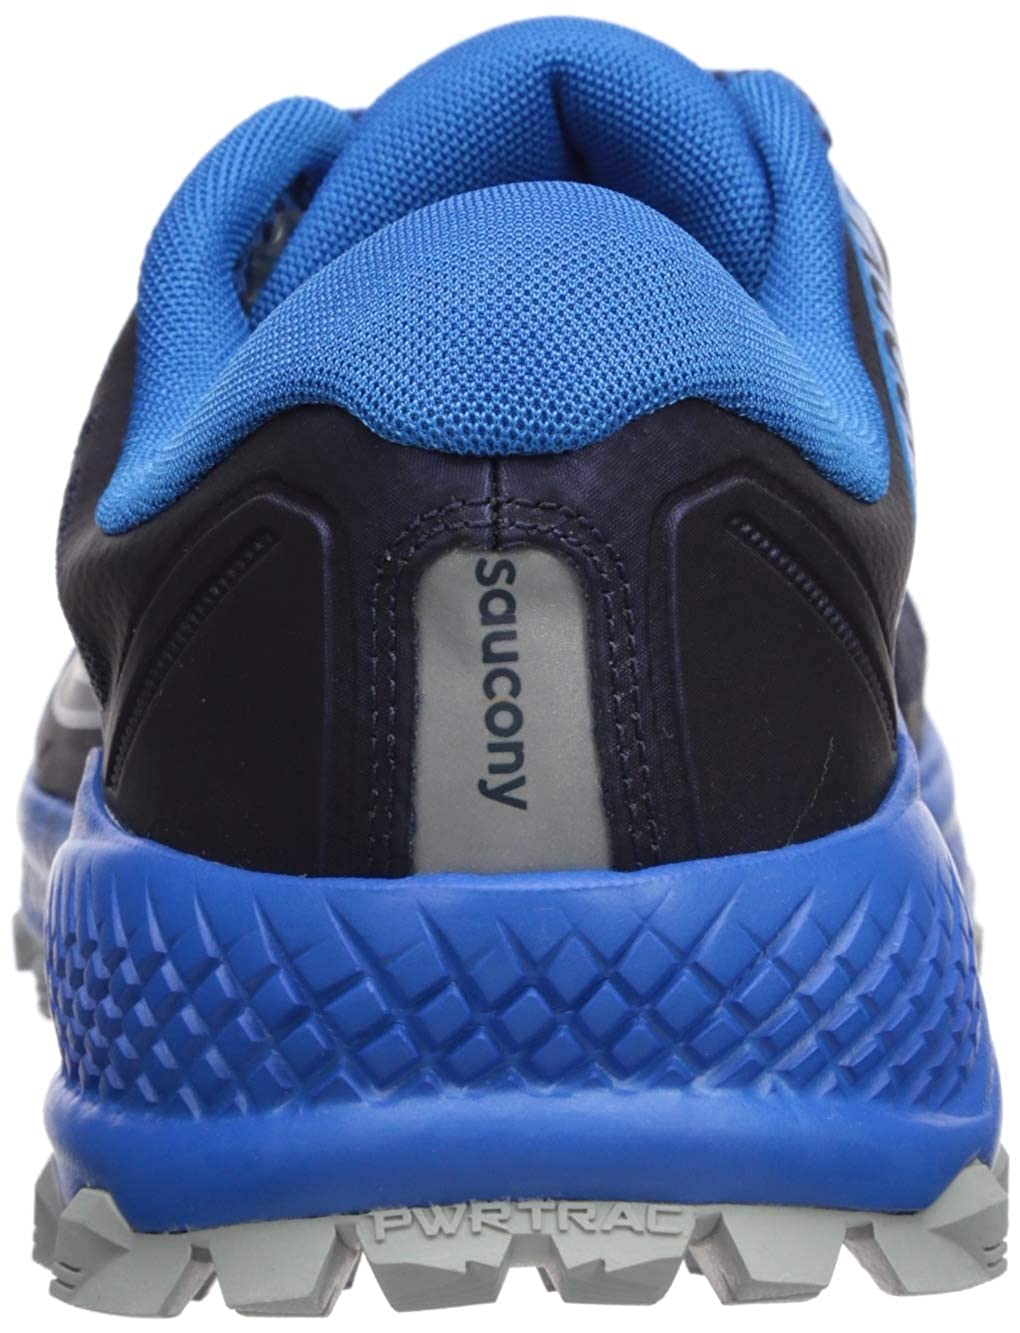 Saucony Peregrine Iso Chaussures de Running Comp/étition Homme